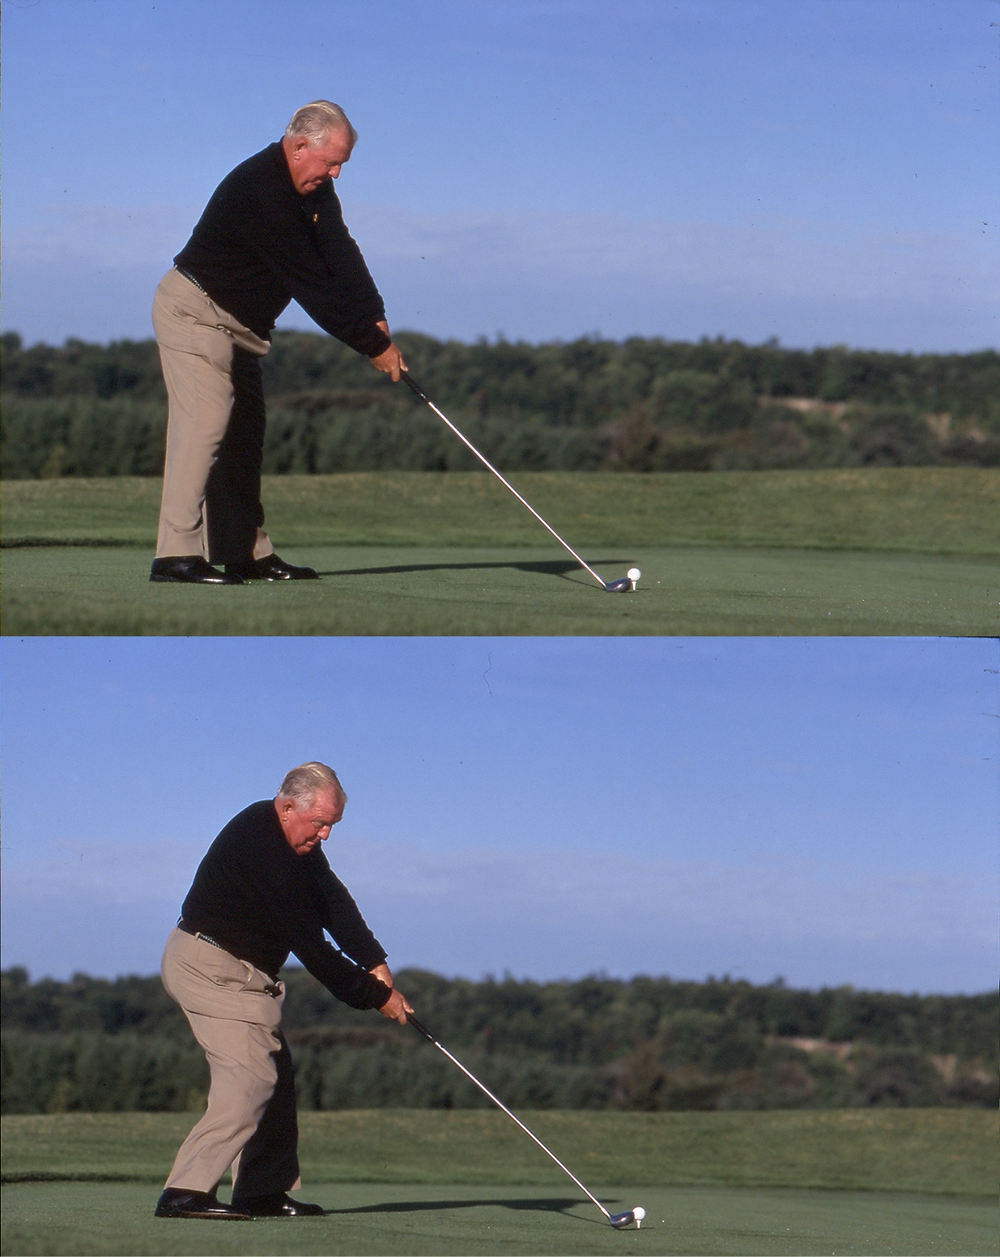 Moe Norman at address (top) and impact (bottom) of his Single Plane golf swing